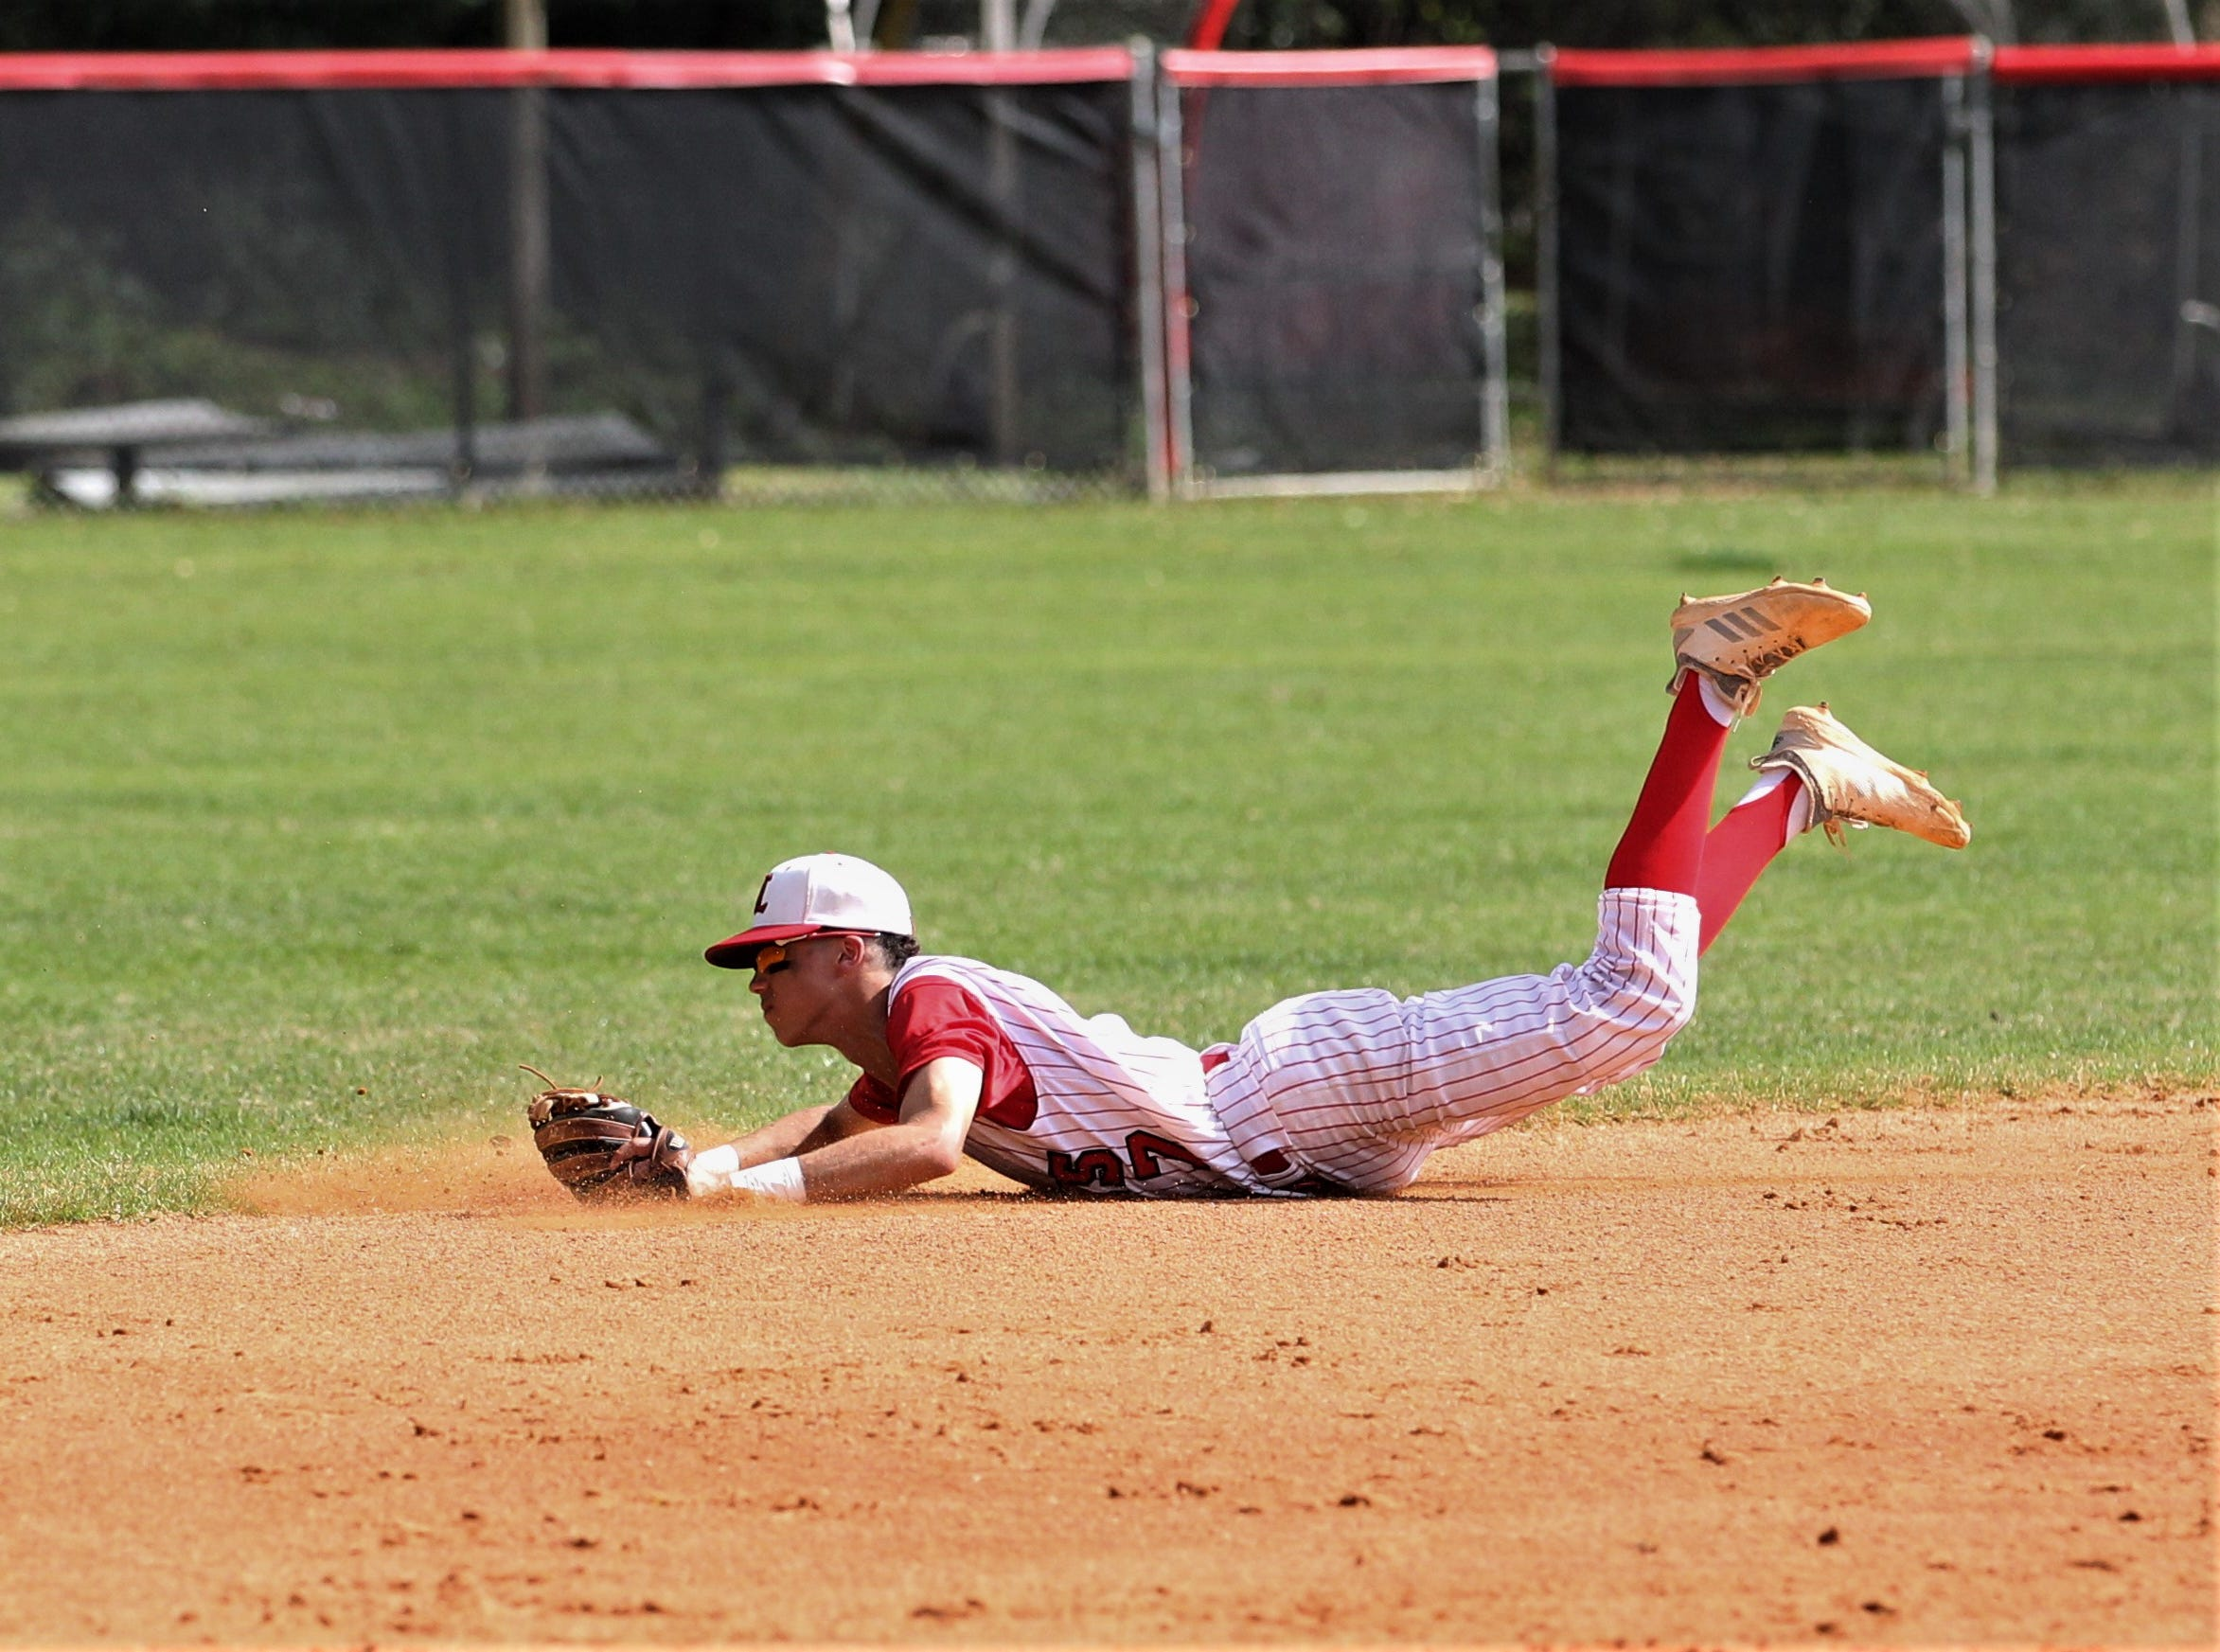 Leon shortstop True Fontenot dives but can't snag a grounder as NFC plays at Leon during a preseason game in February.